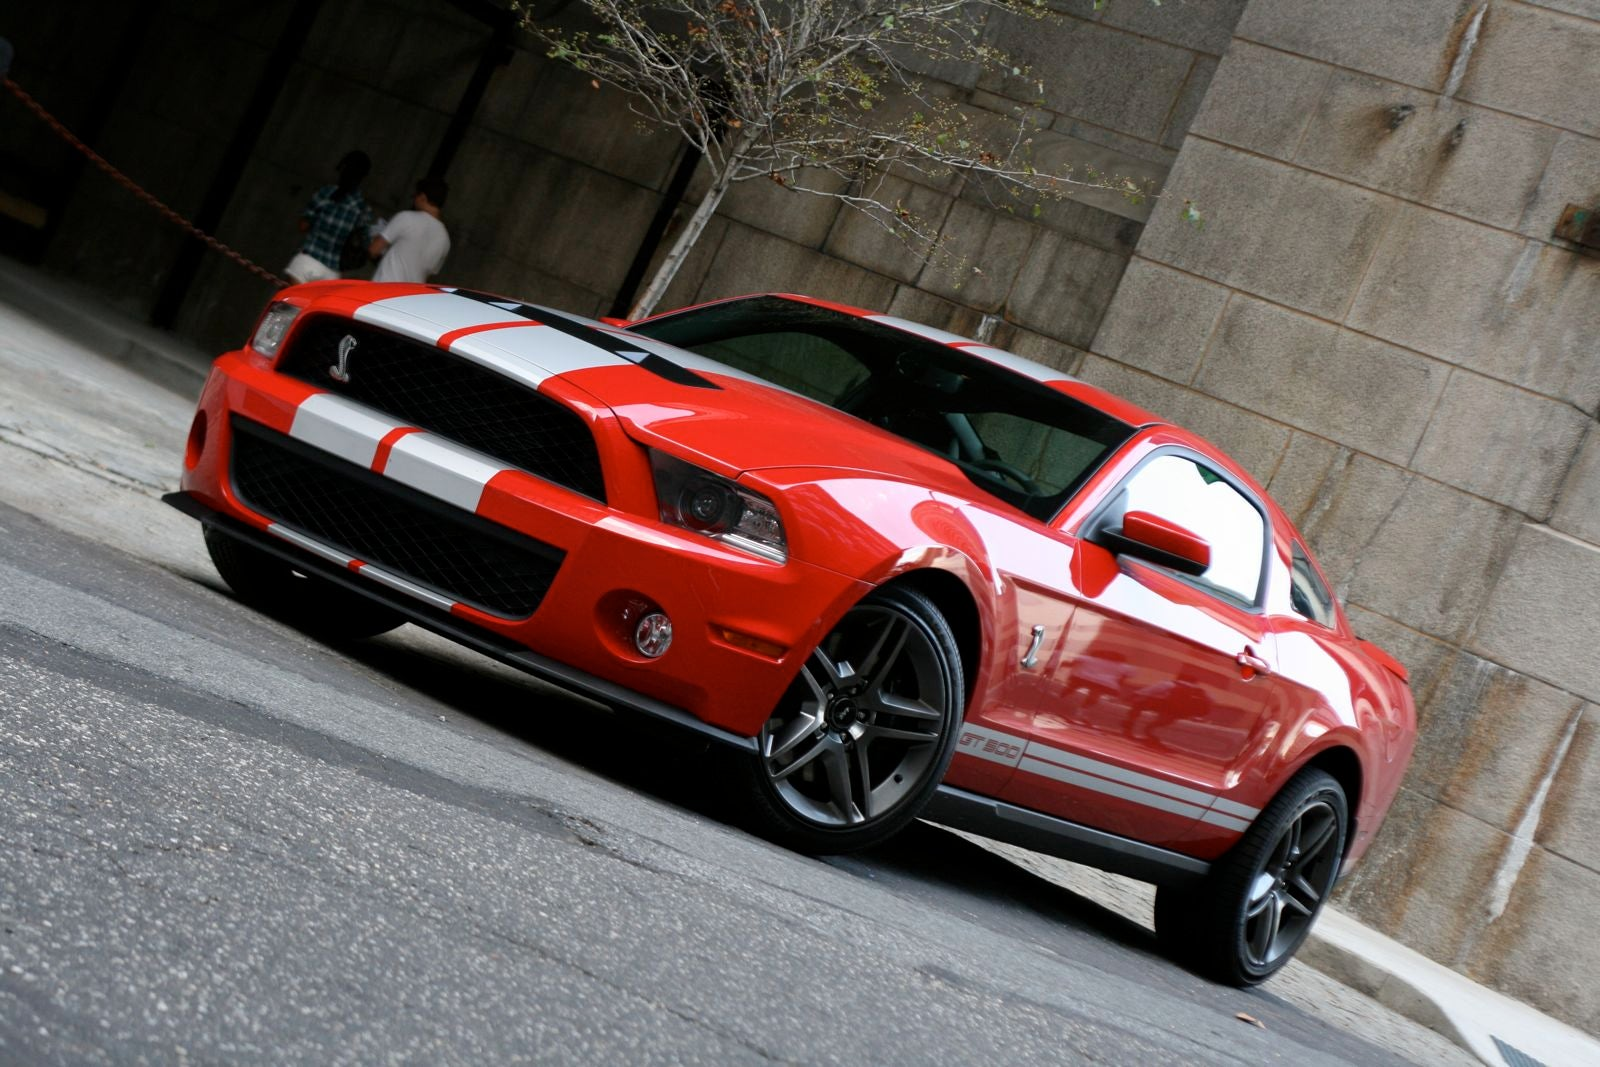 2010 shelby gt500. Black Bedroom Furniture Sets. Home Design Ideas